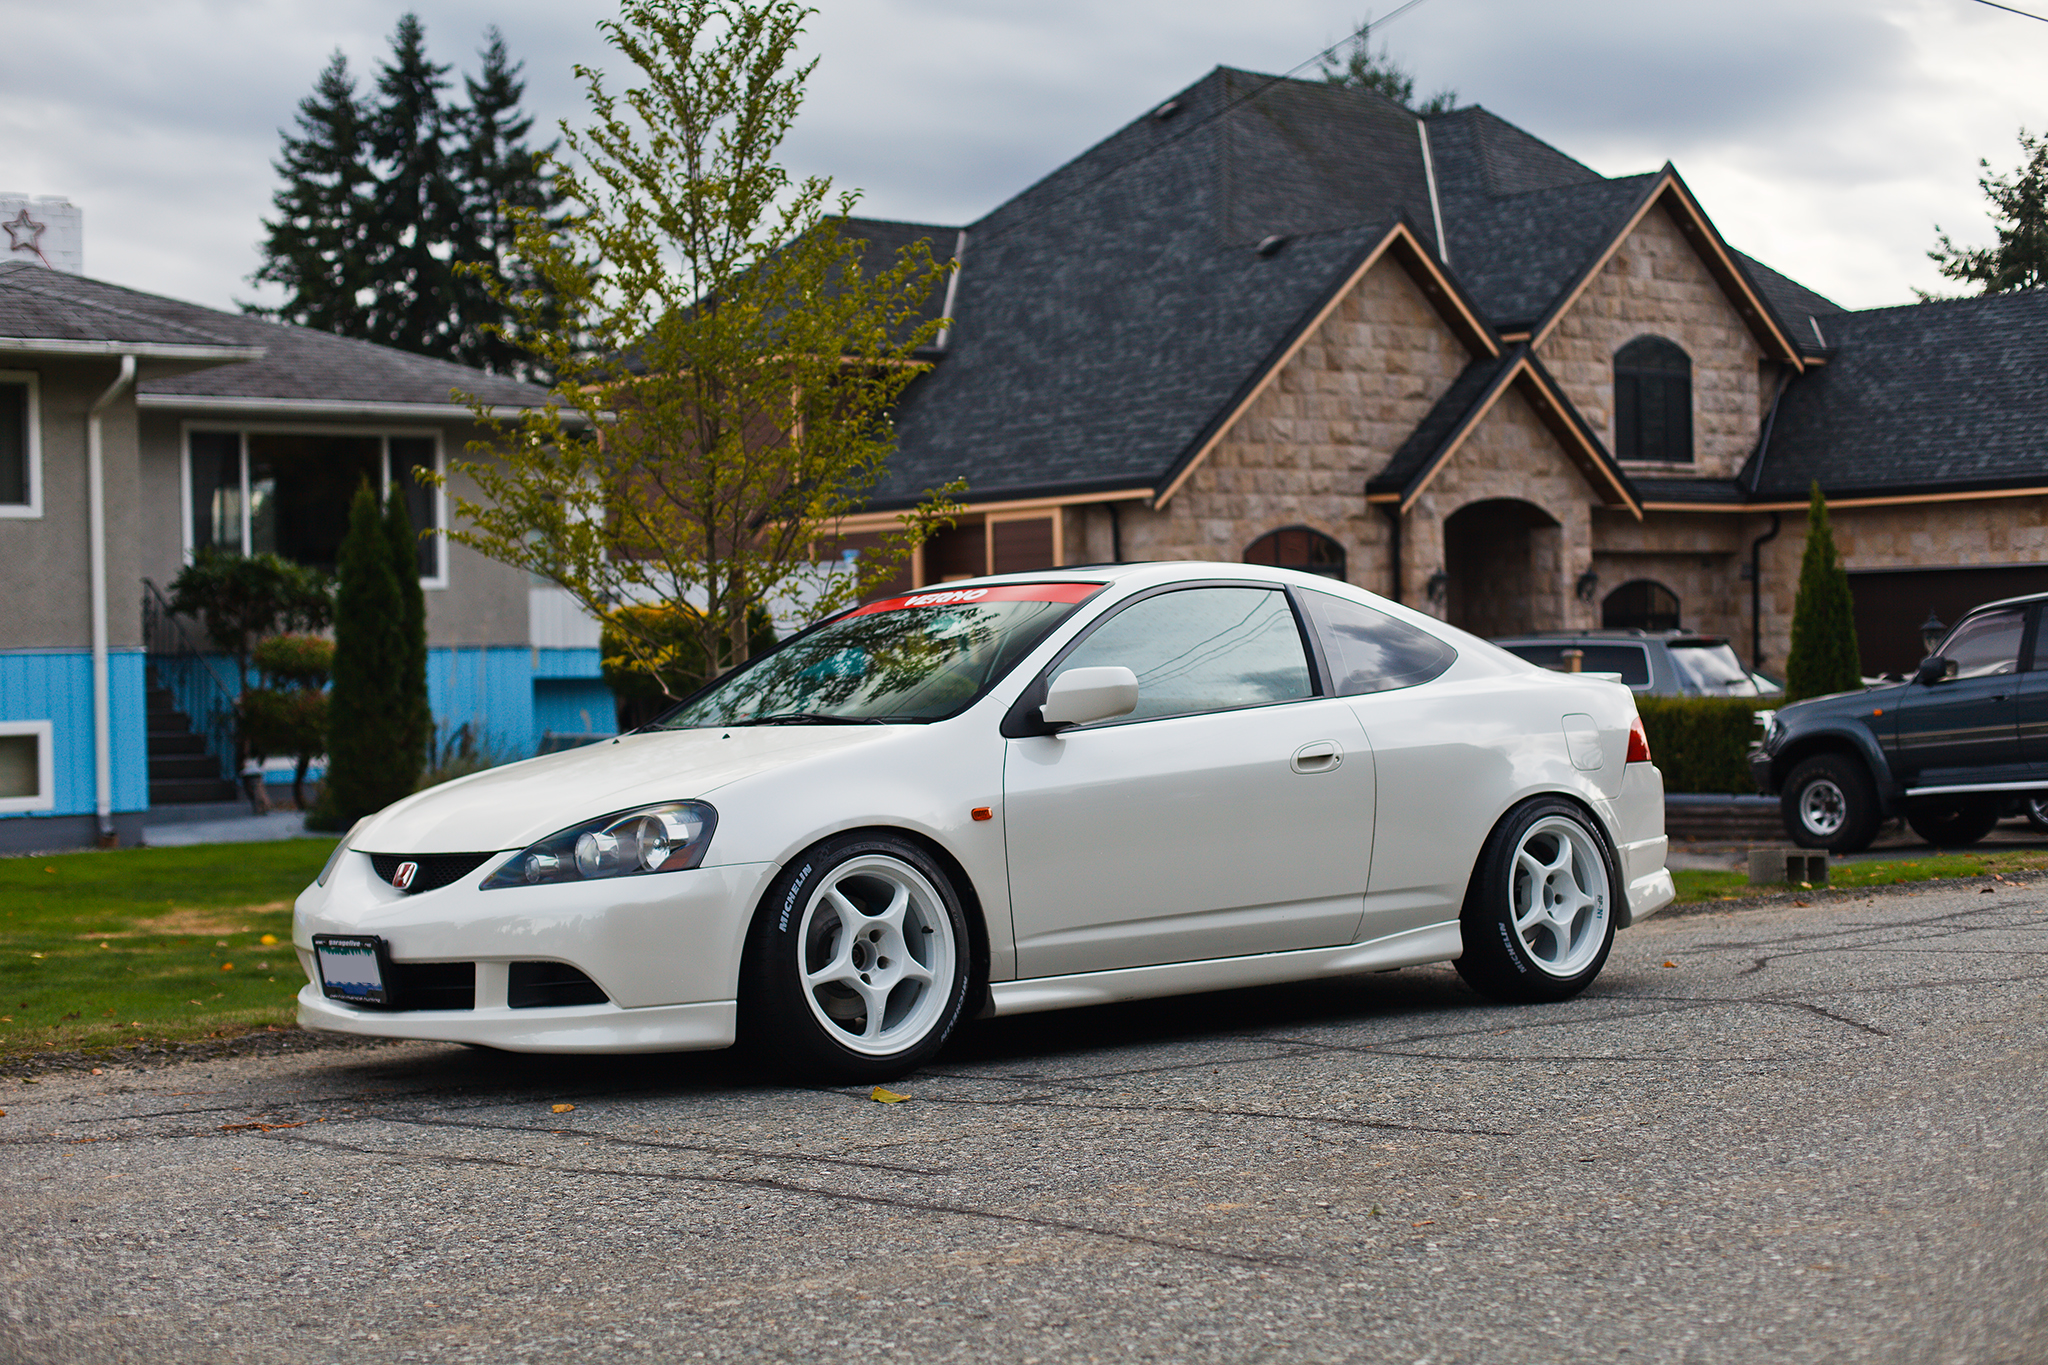 manual fs type member acura vtec rare for cars car s condition fl mint miles near forums sale rsx